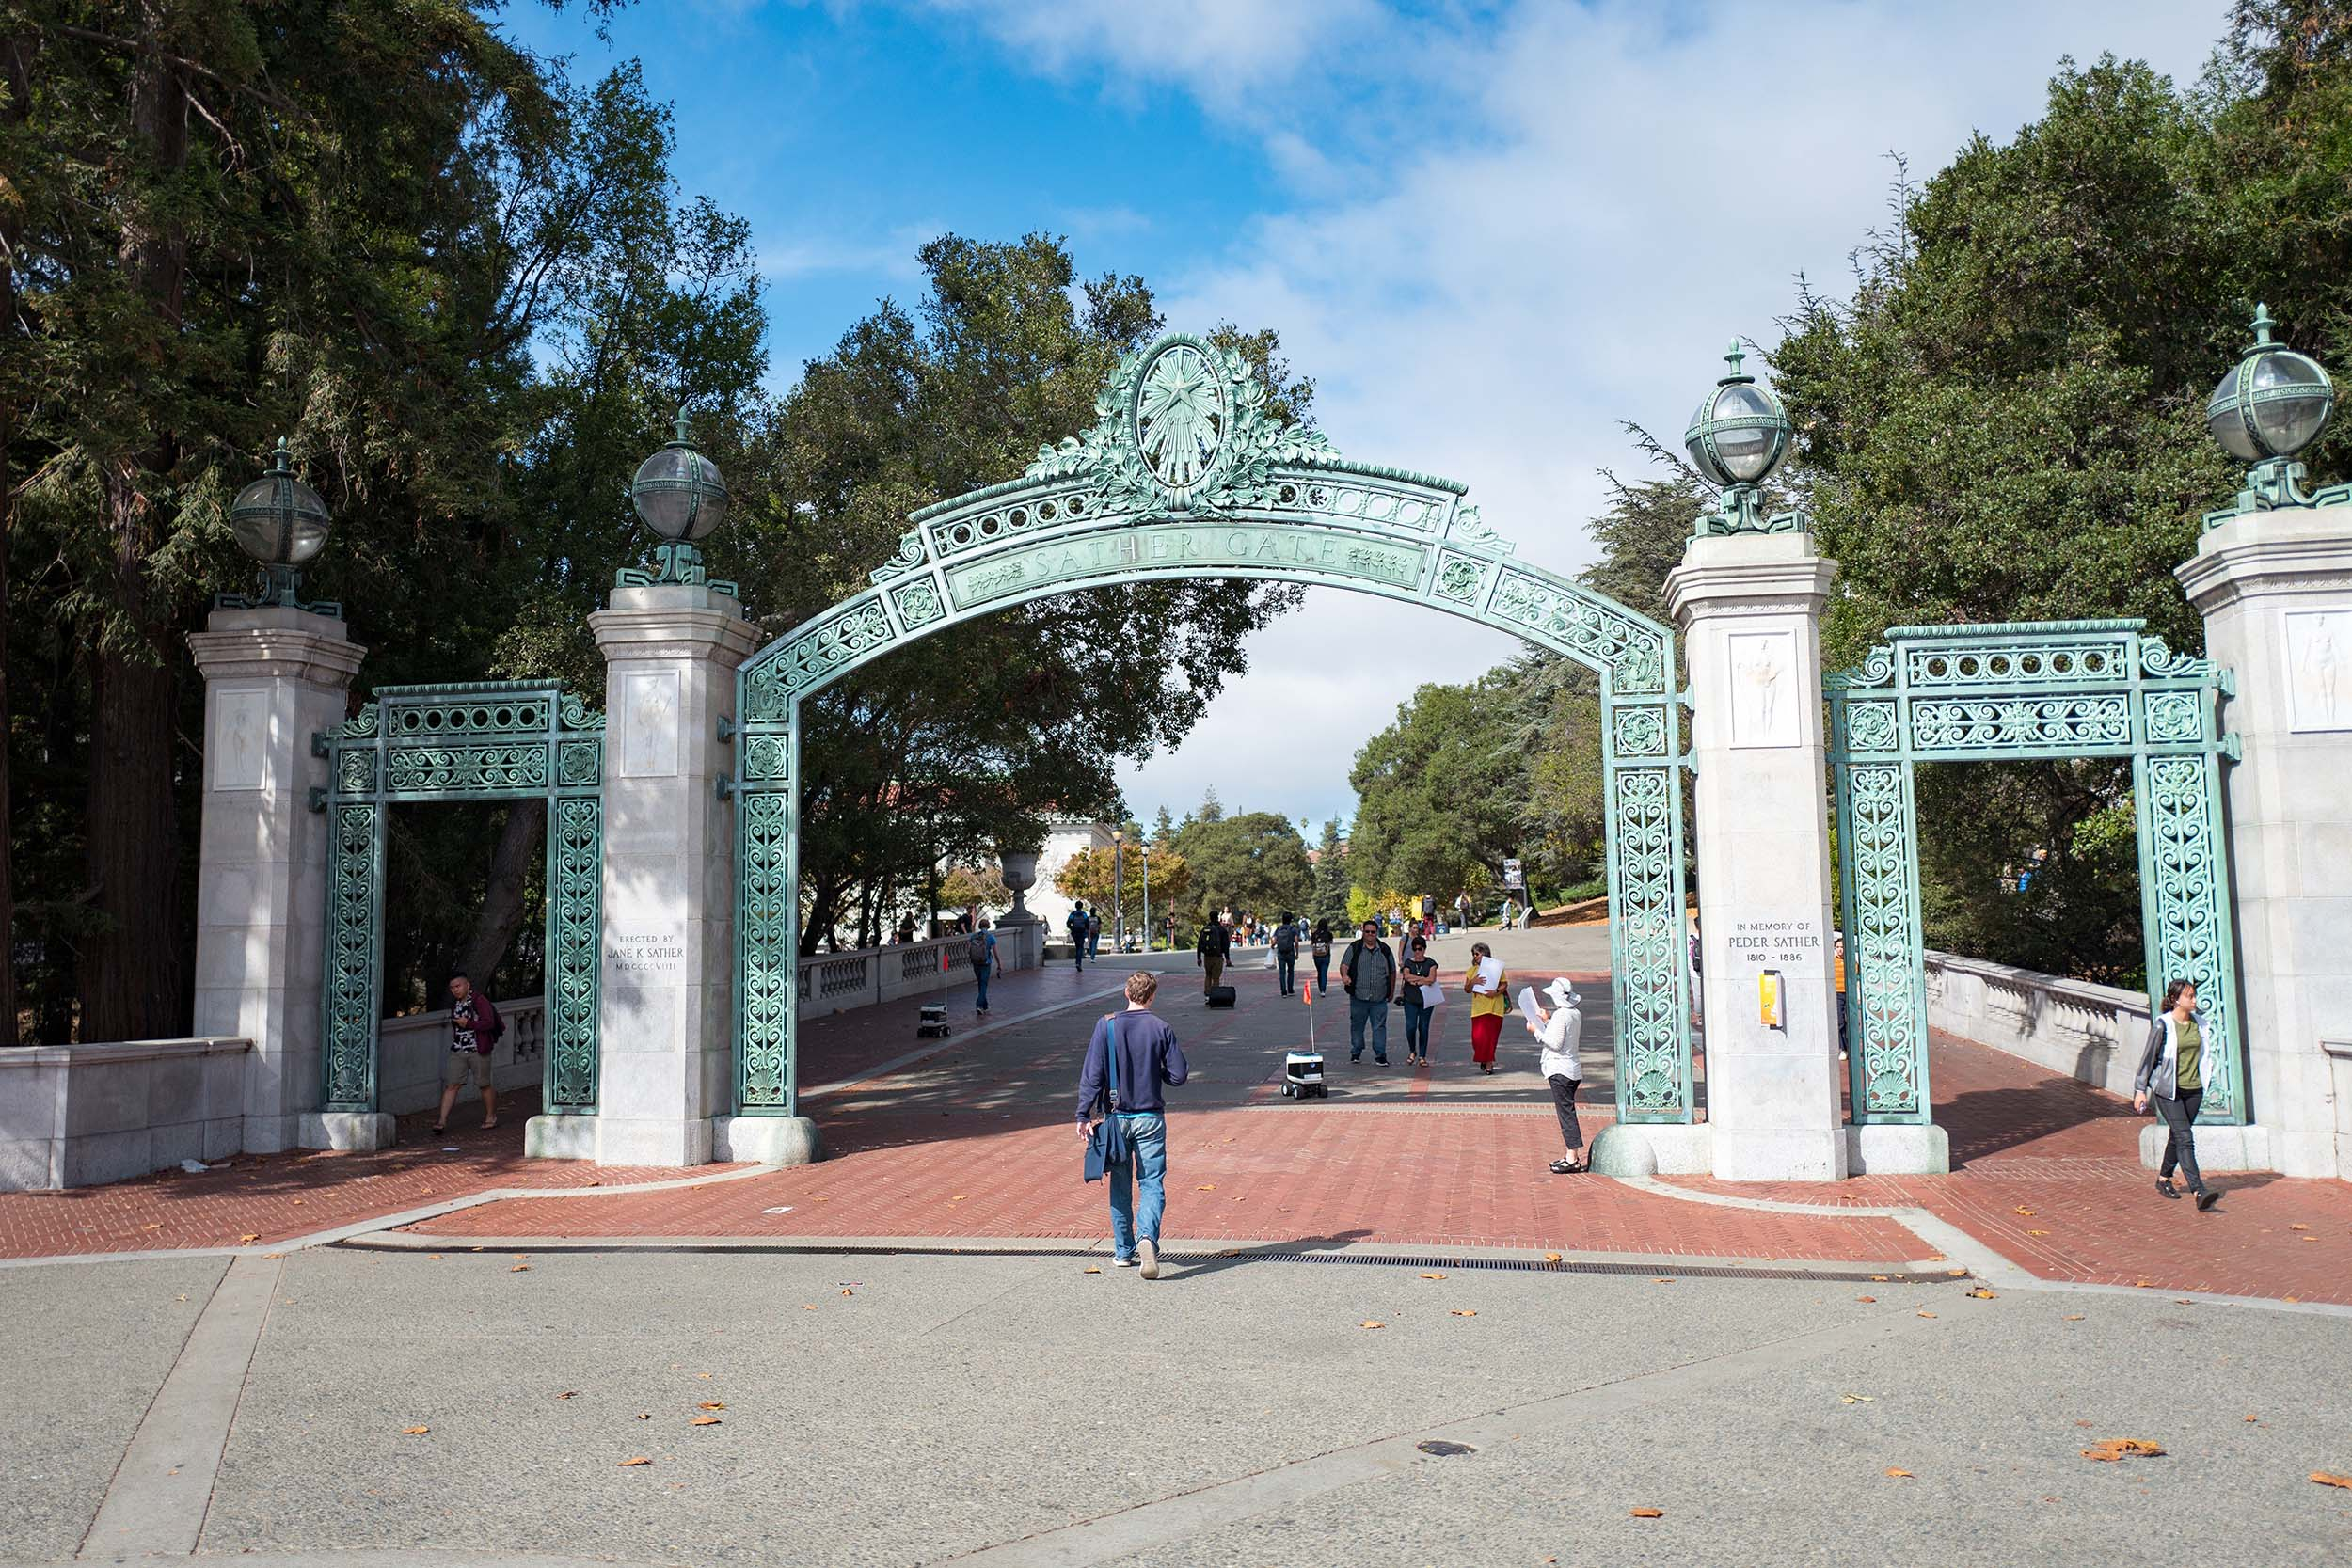 The iconic Sather Gate on the campus of UC Berkeley in downtown Berkeley, California, on October 9, 2018.